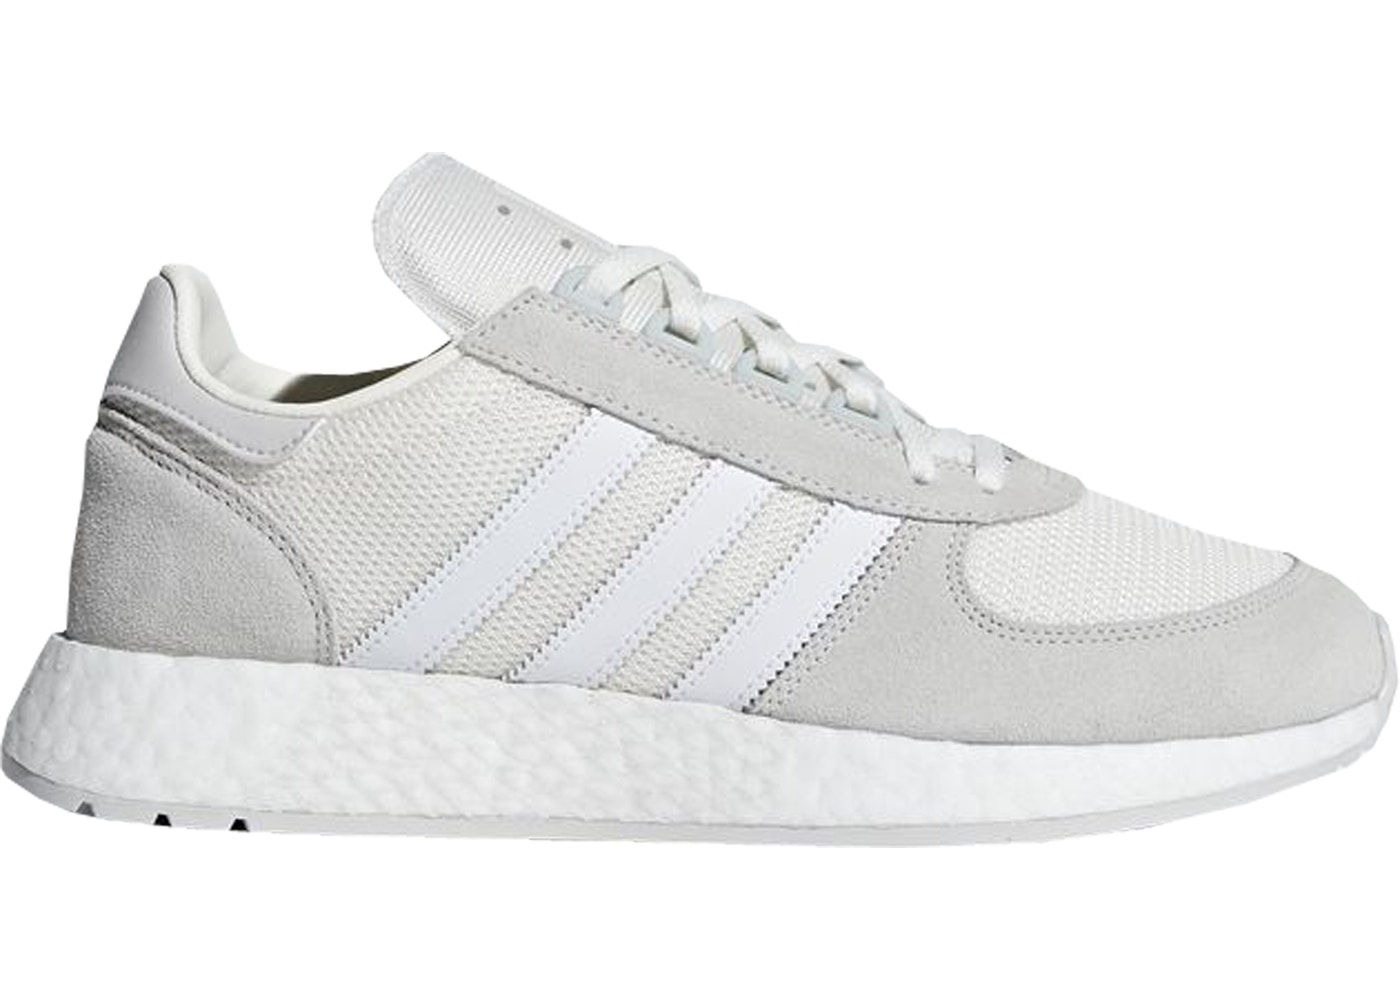 adidas Marathon x 5923 Never Made Pack Triple White